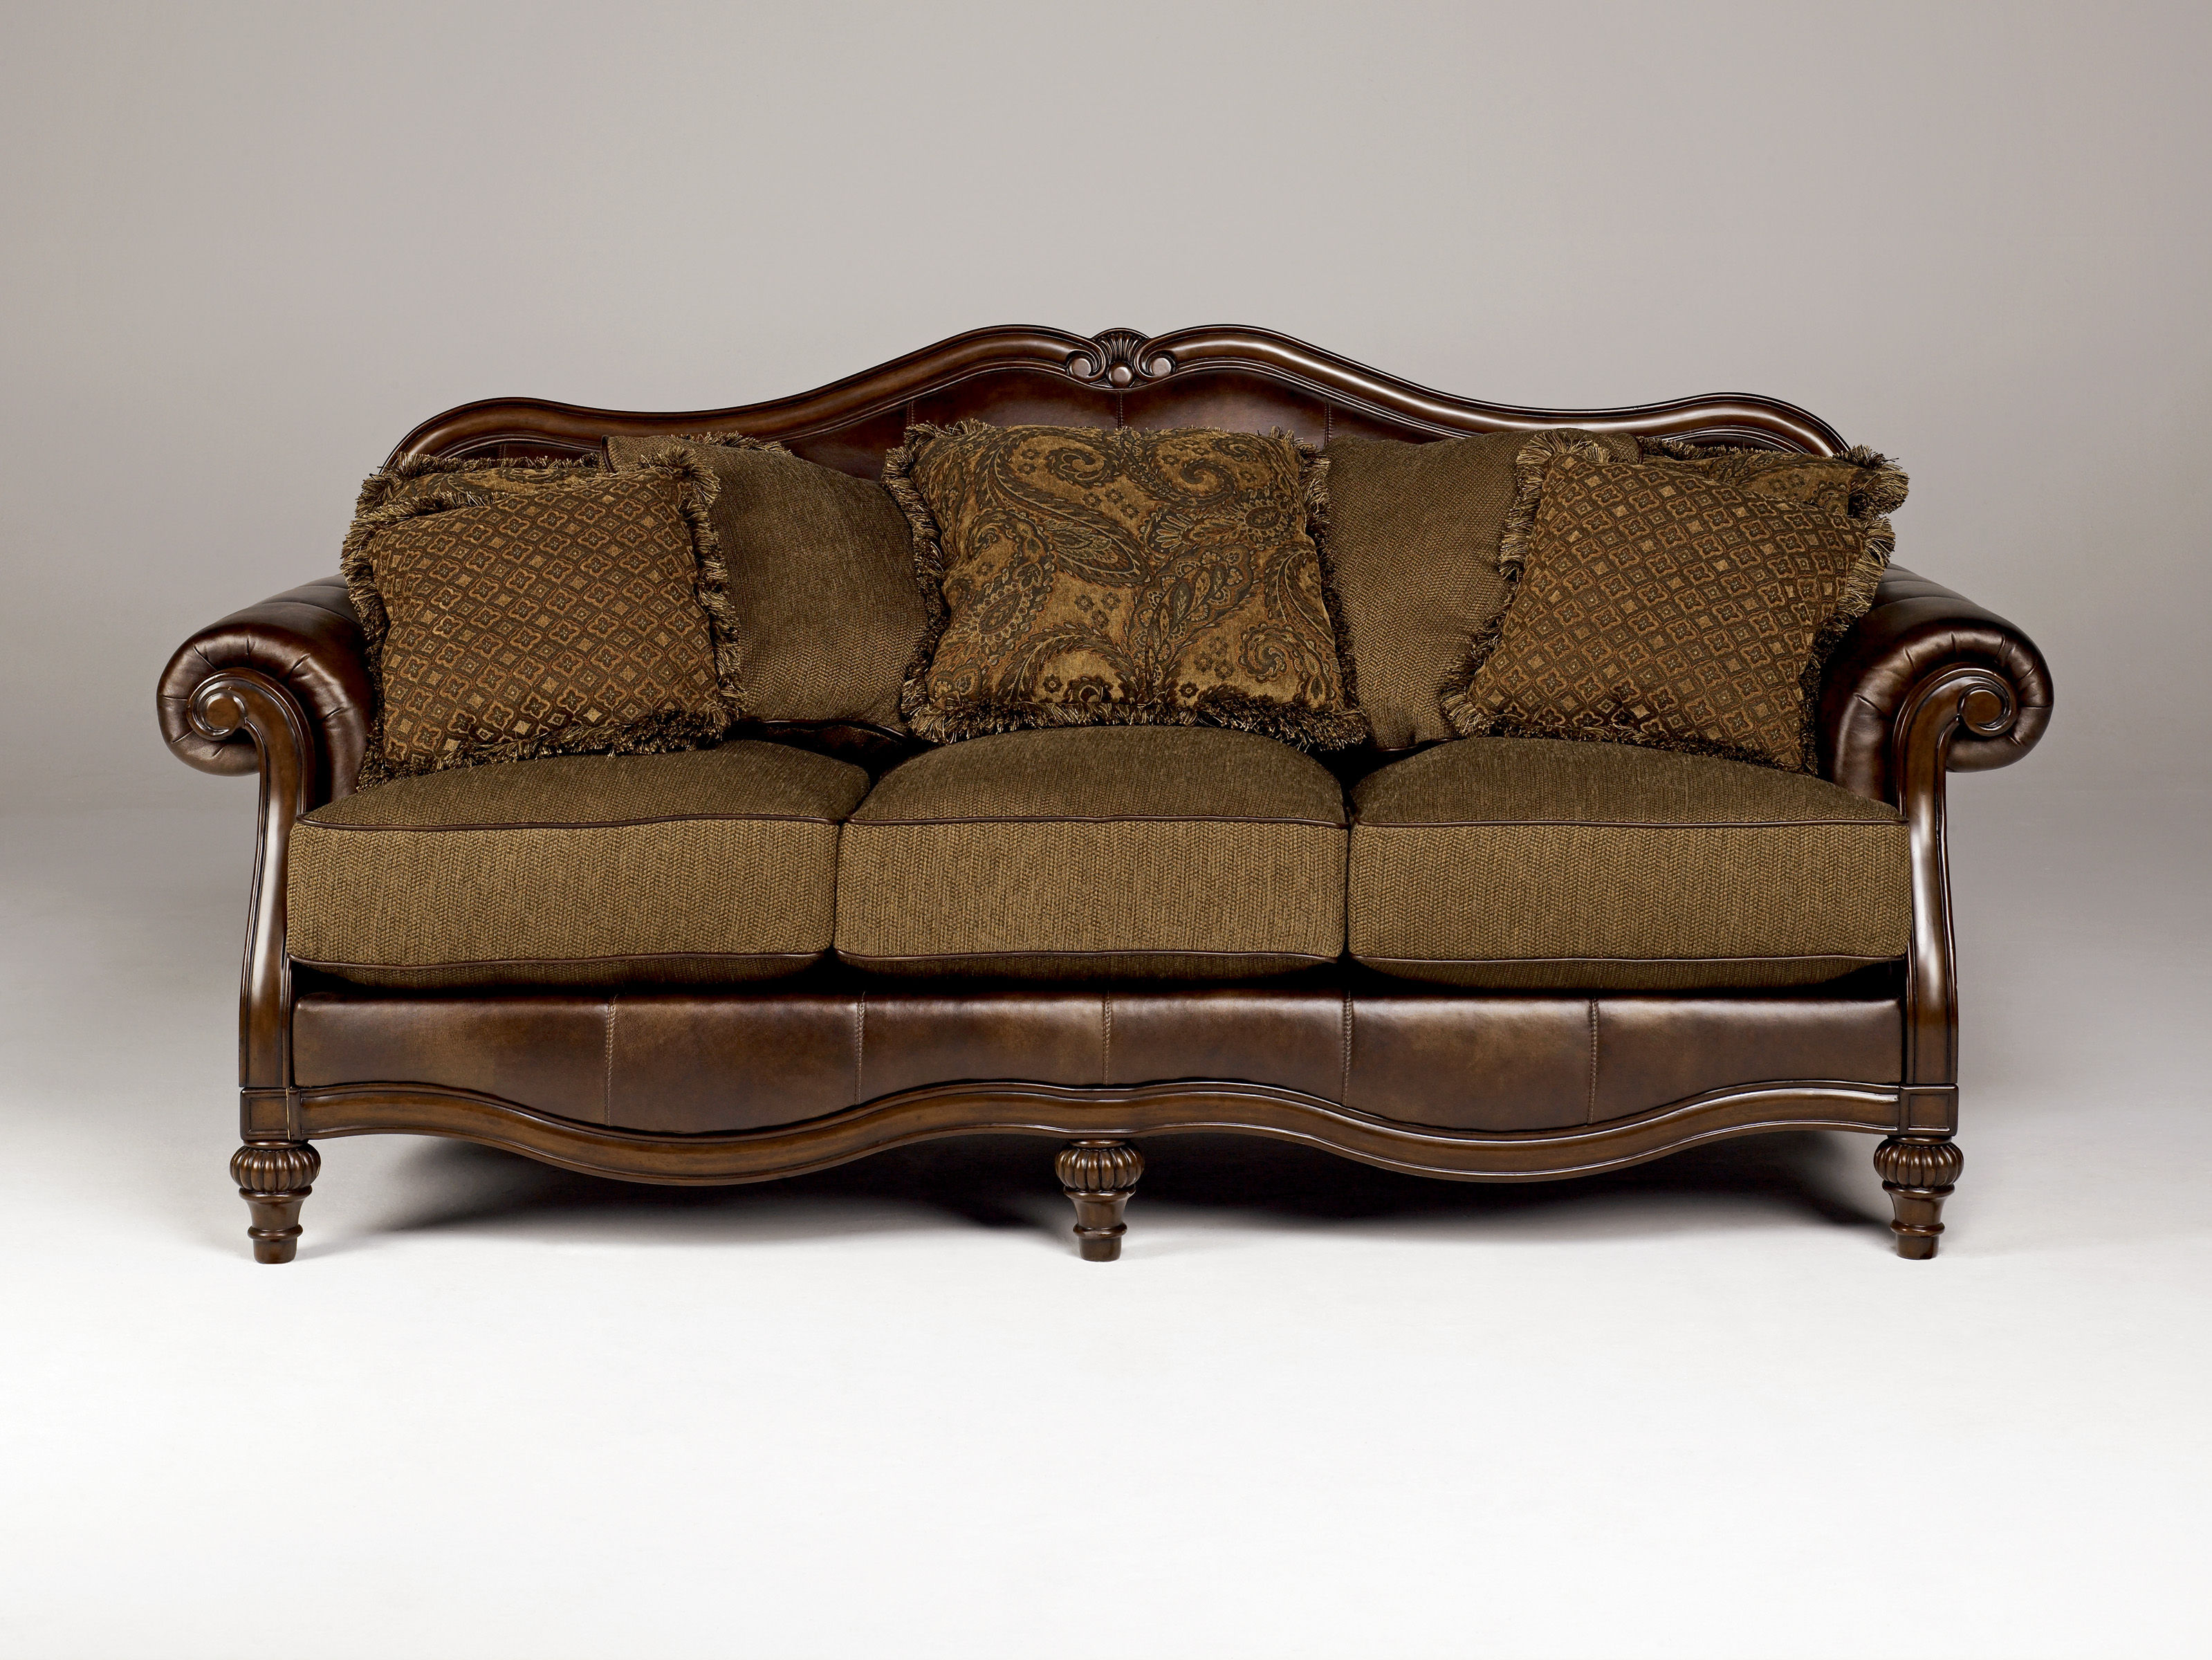 antique wooden sofa Radkahair